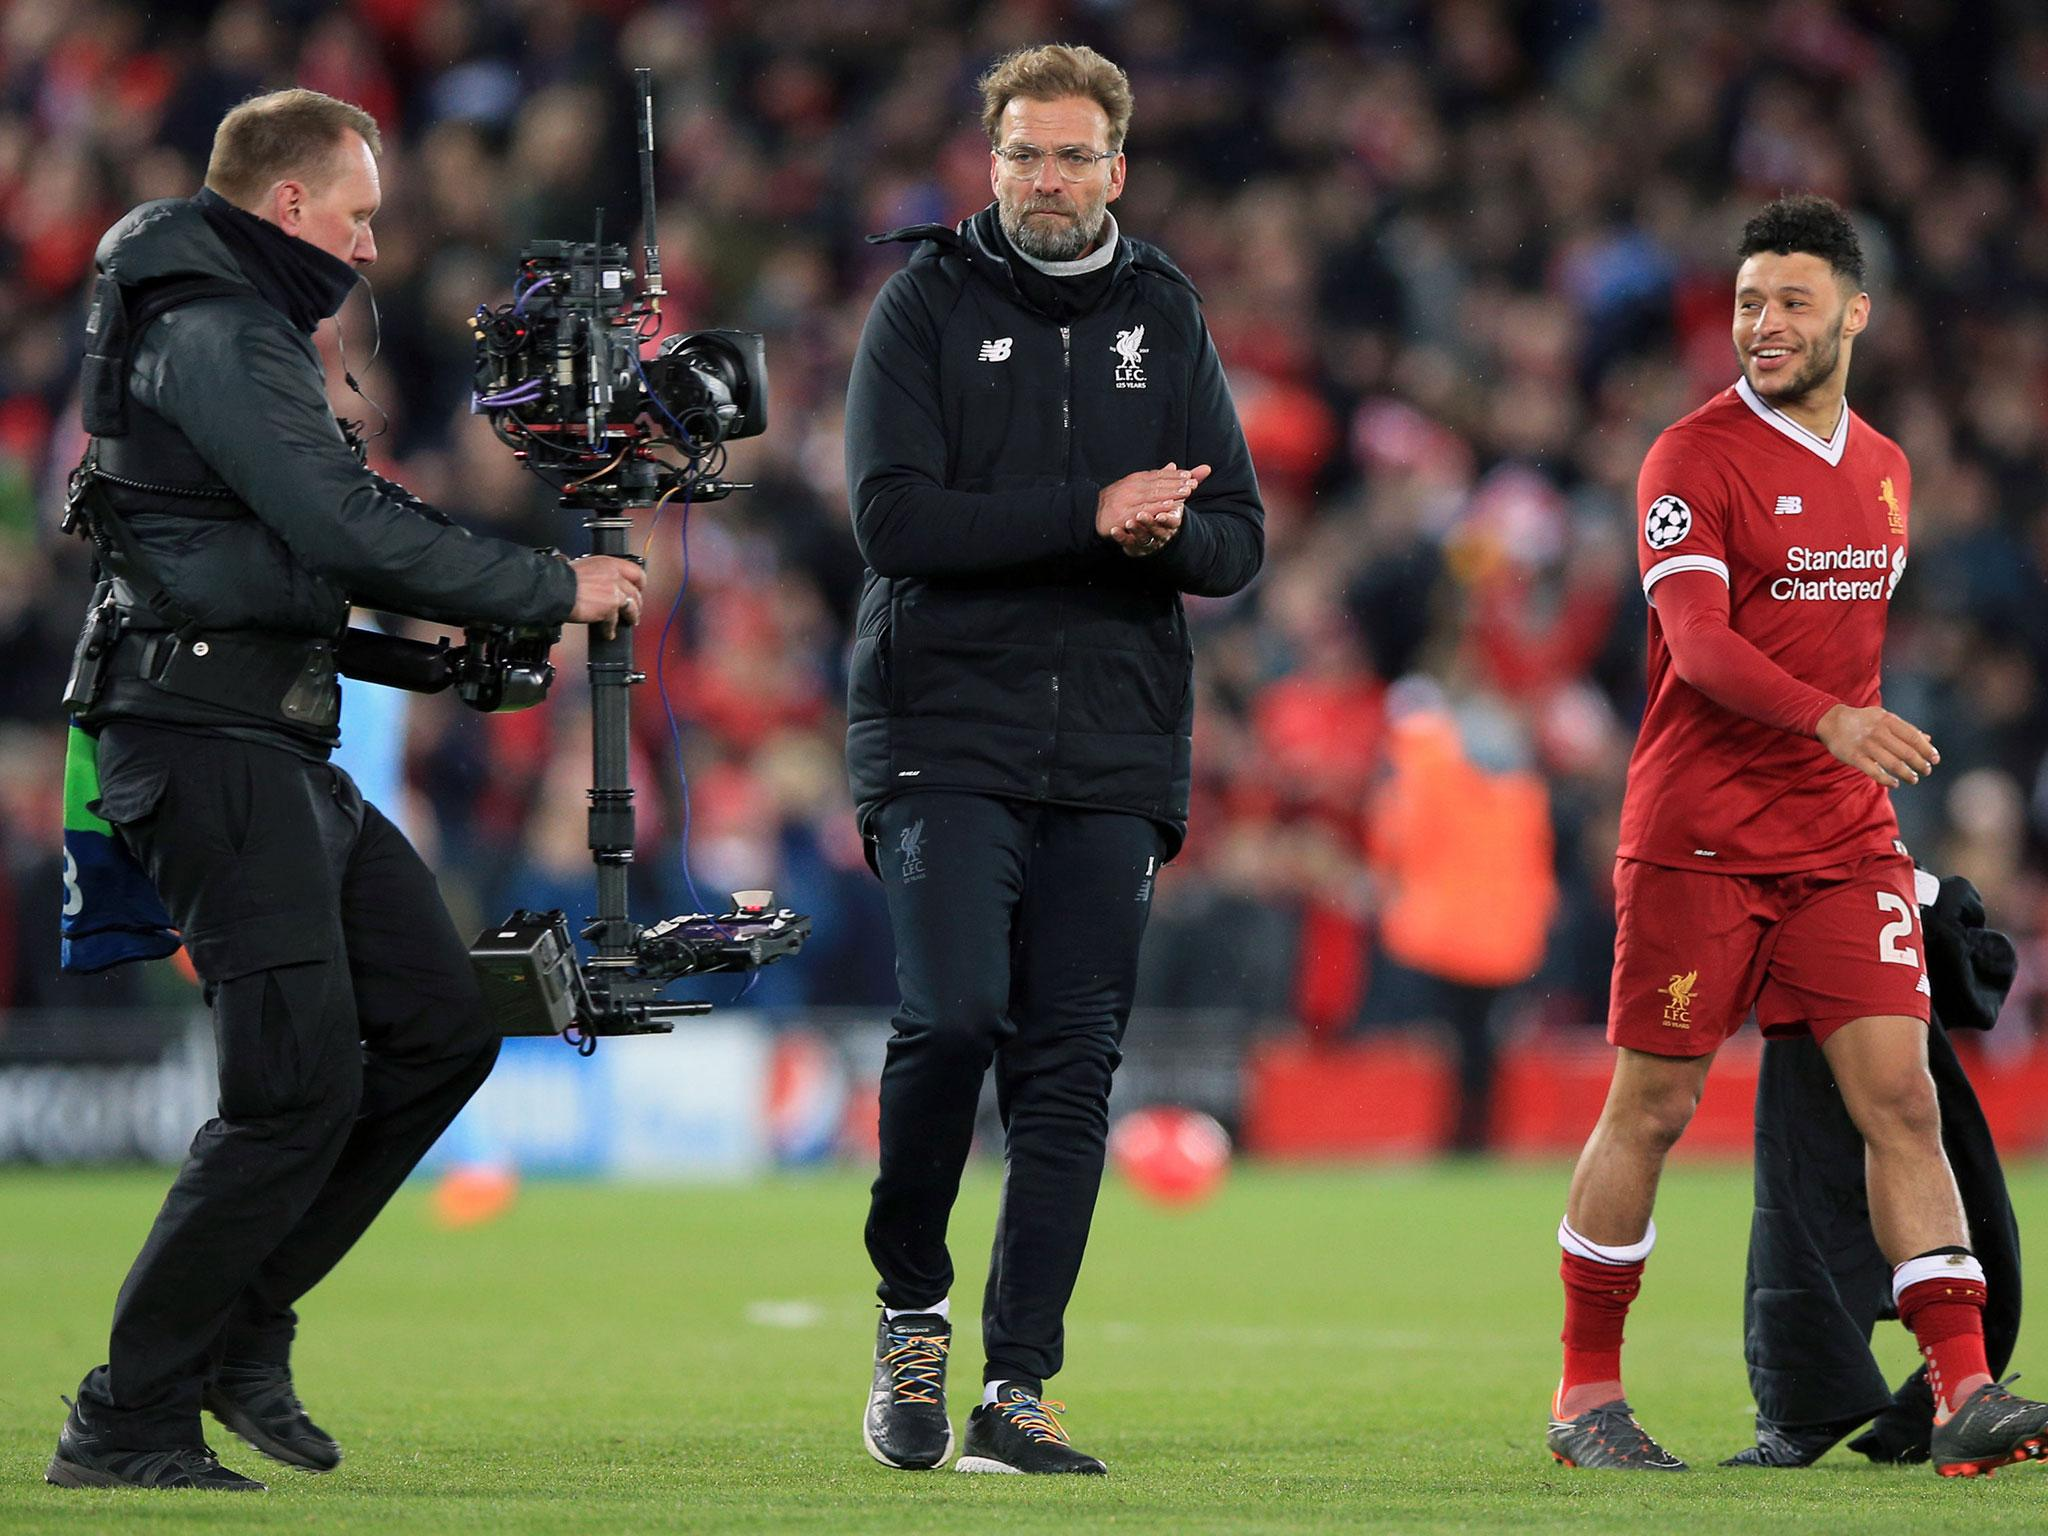 Jurgen Klopp: None of my Liverpool players 'were dancing in the dressing room' after Manchester City win